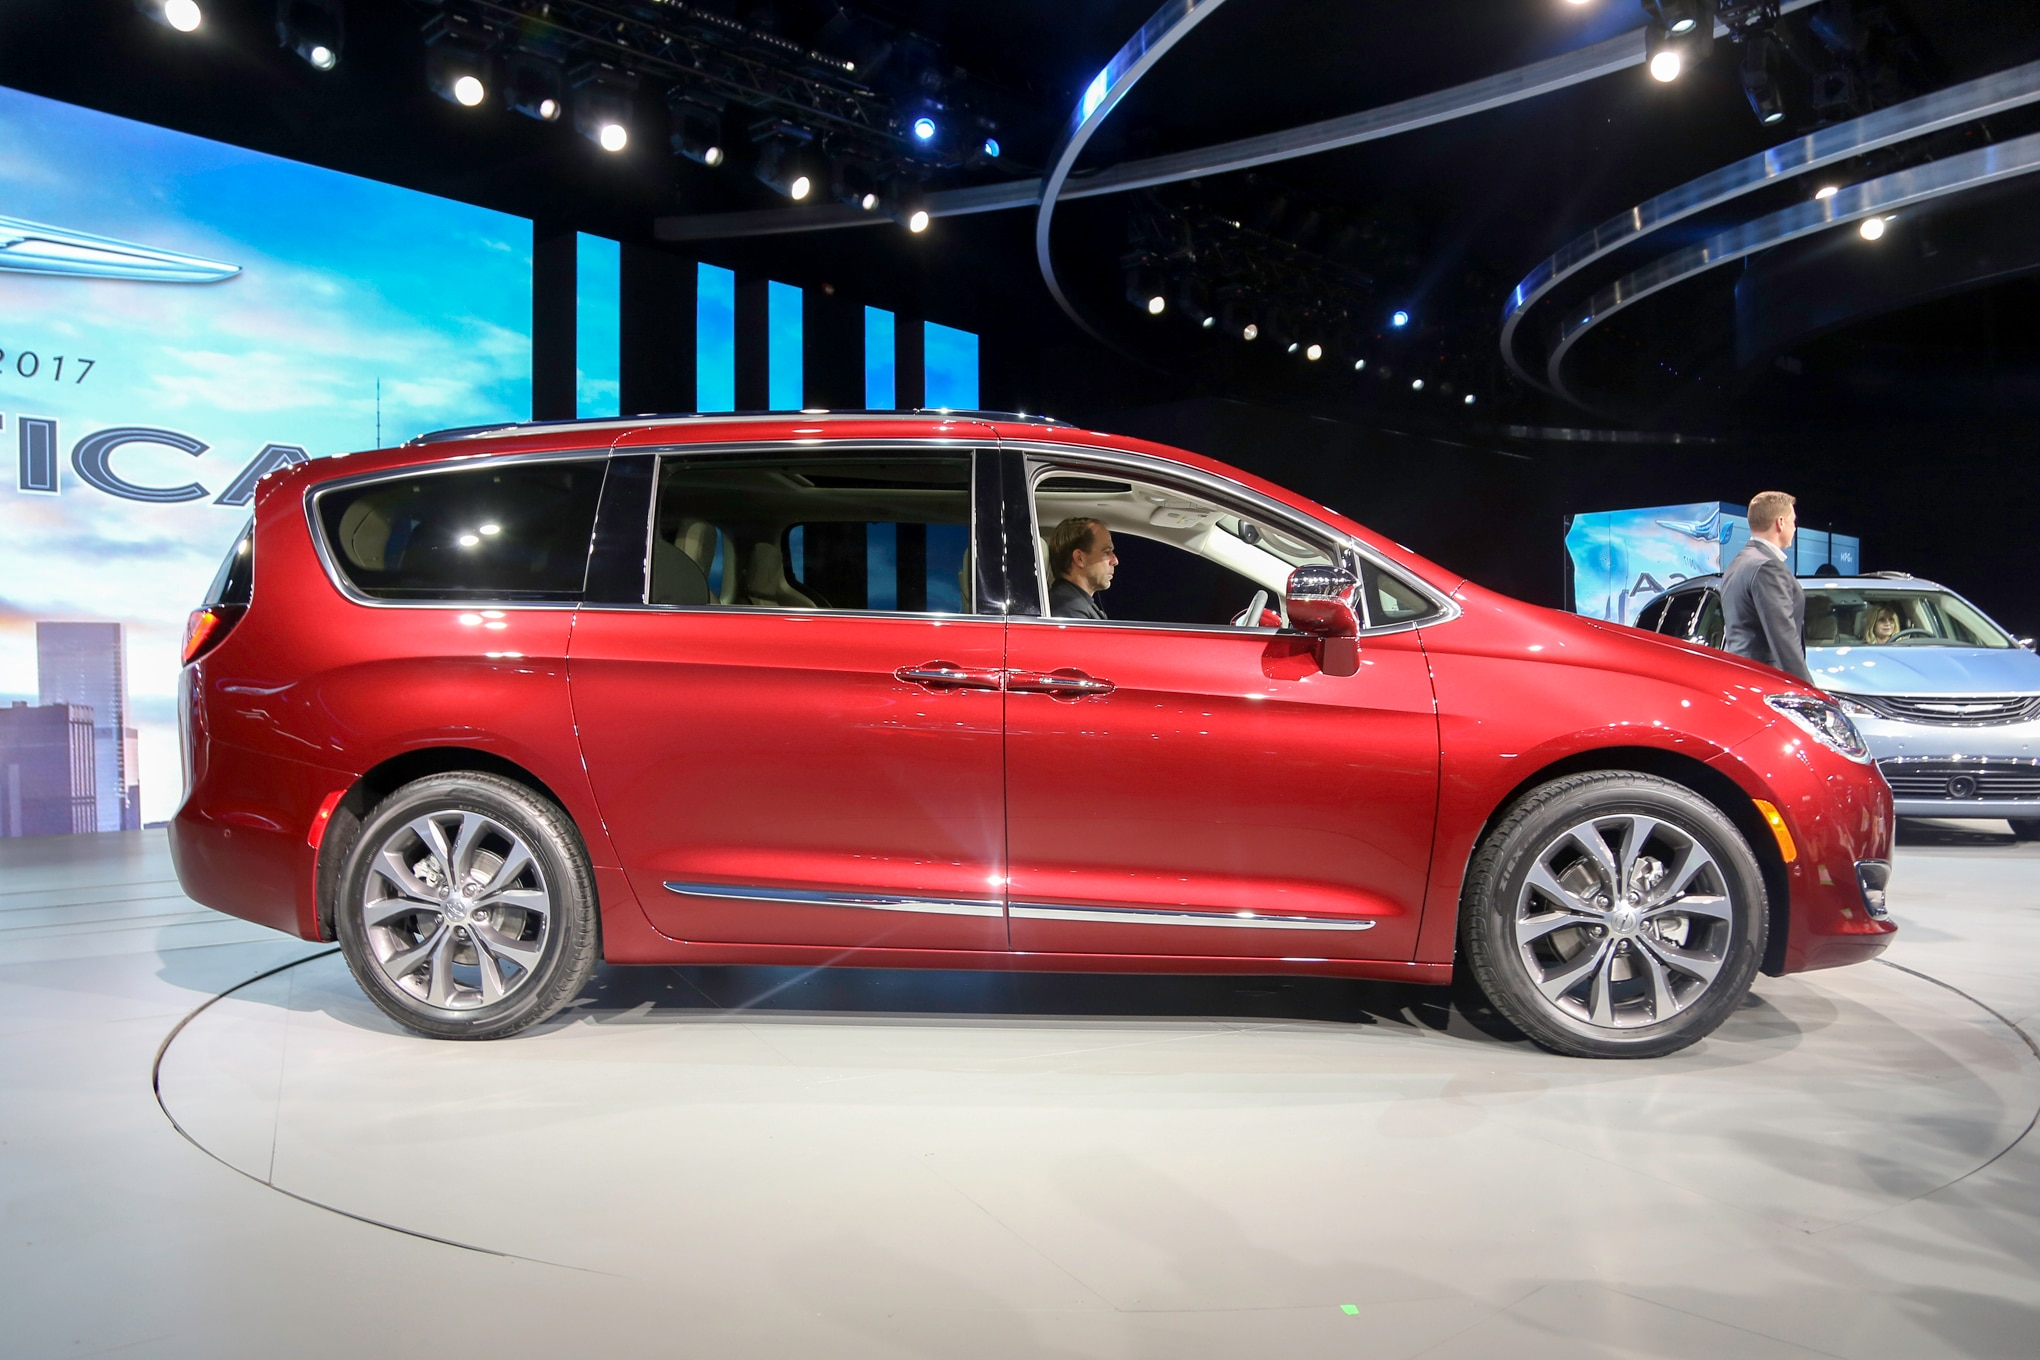 2017 chrysler pacifica priced from 29 590 automobile magazine. Black Bedroom Furniture Sets. Home Design Ideas